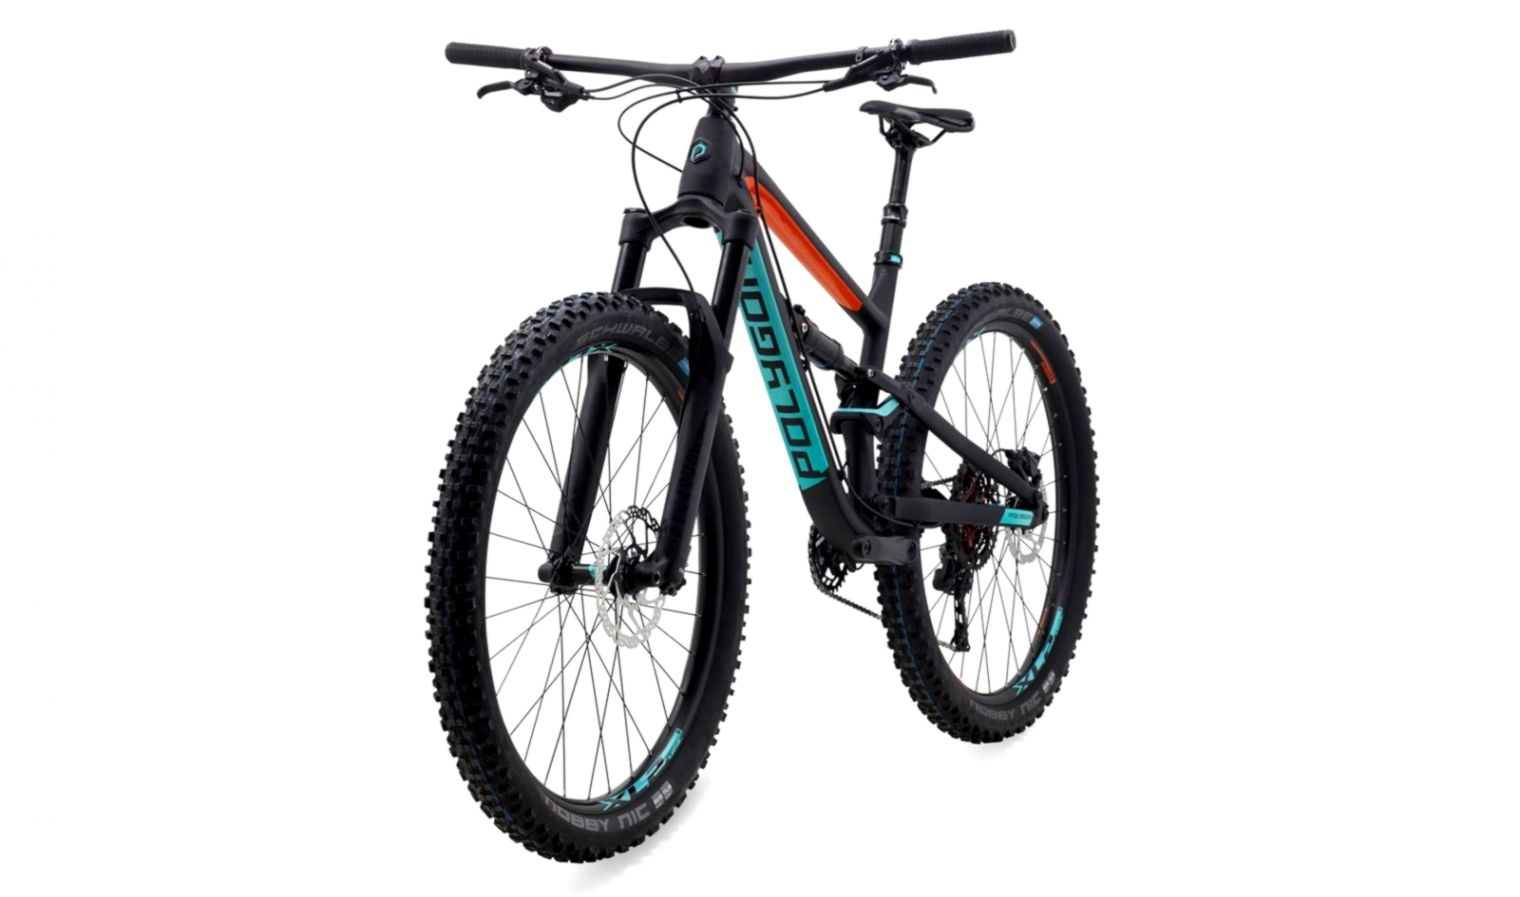 Dual Suspension Mountain Bikes With Free 14 Day Test Ride >> Dual Suspension Mountain Bike Styles Wallpapers